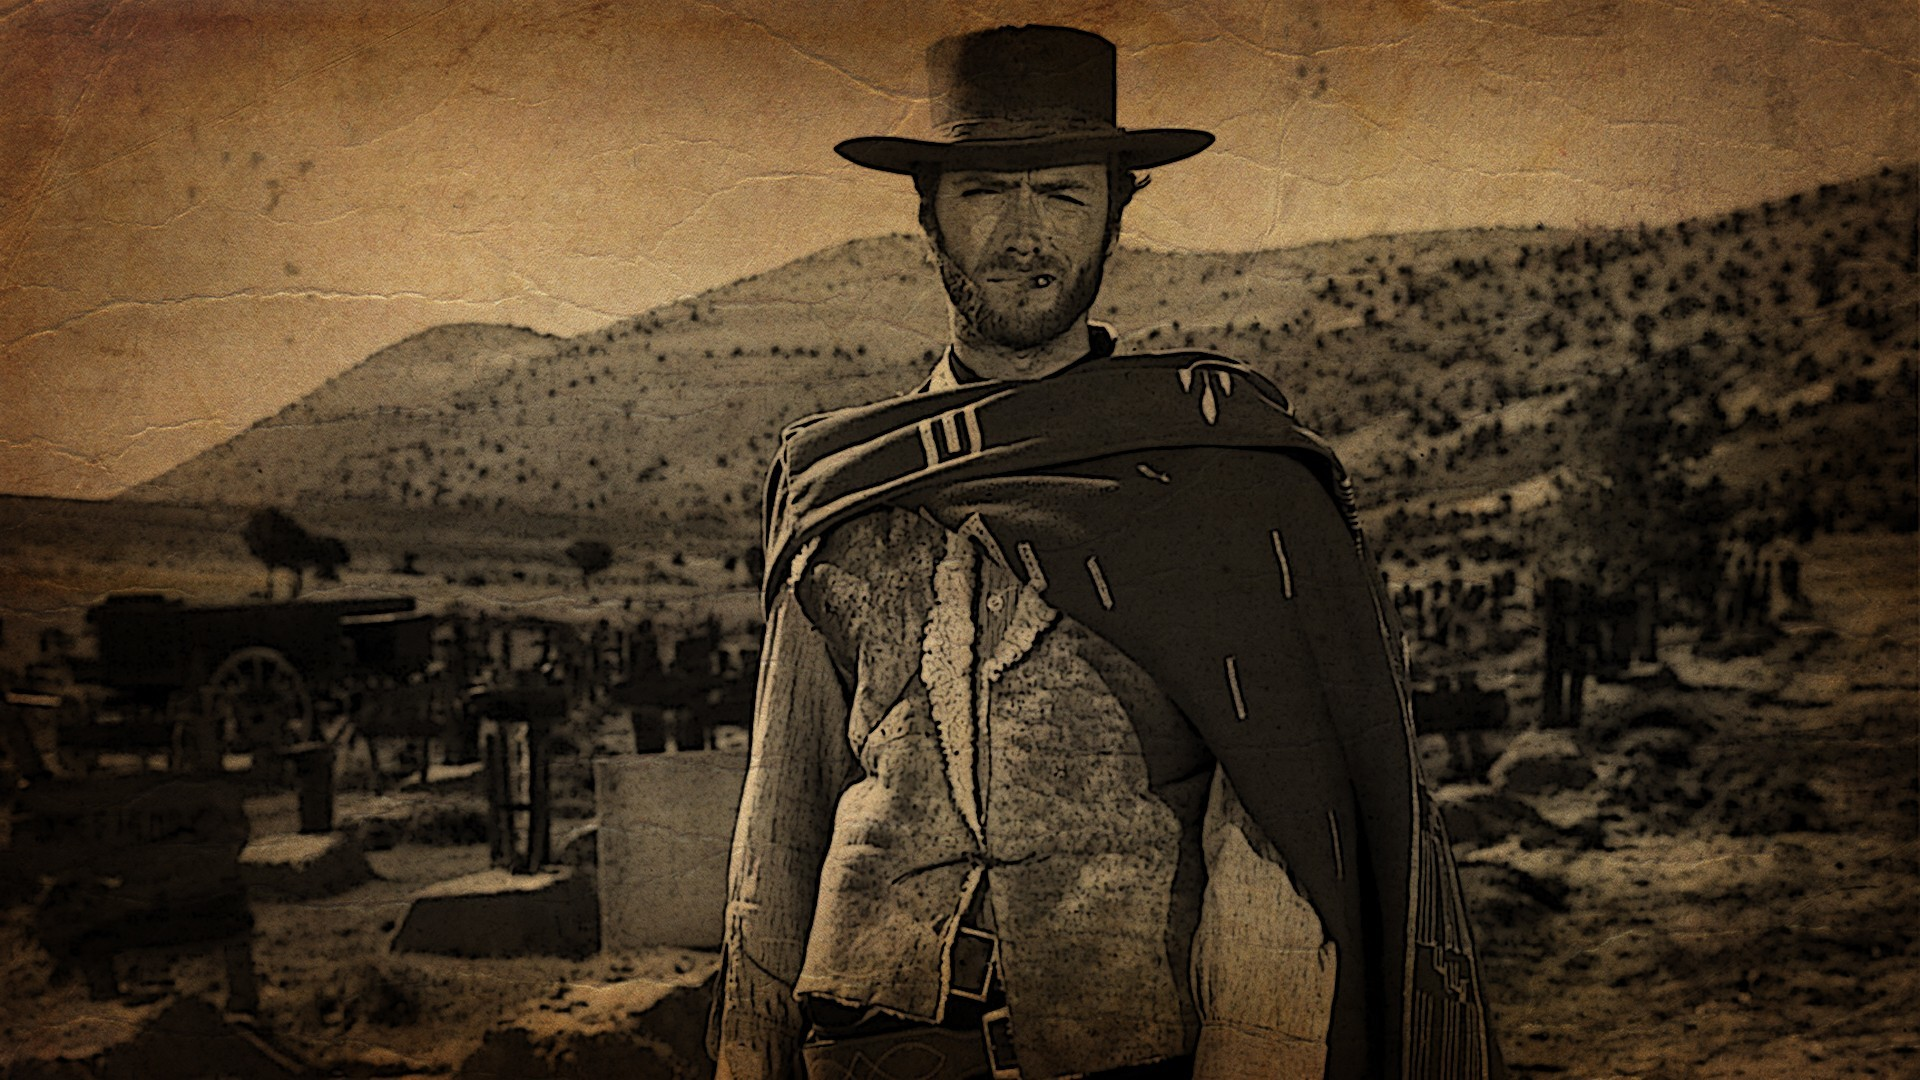 Res: 1920x1080, Clint Eastwood, Western, Sepia, Cowboys Wallpapers HD / Desktop and Mobile  Backgrounds